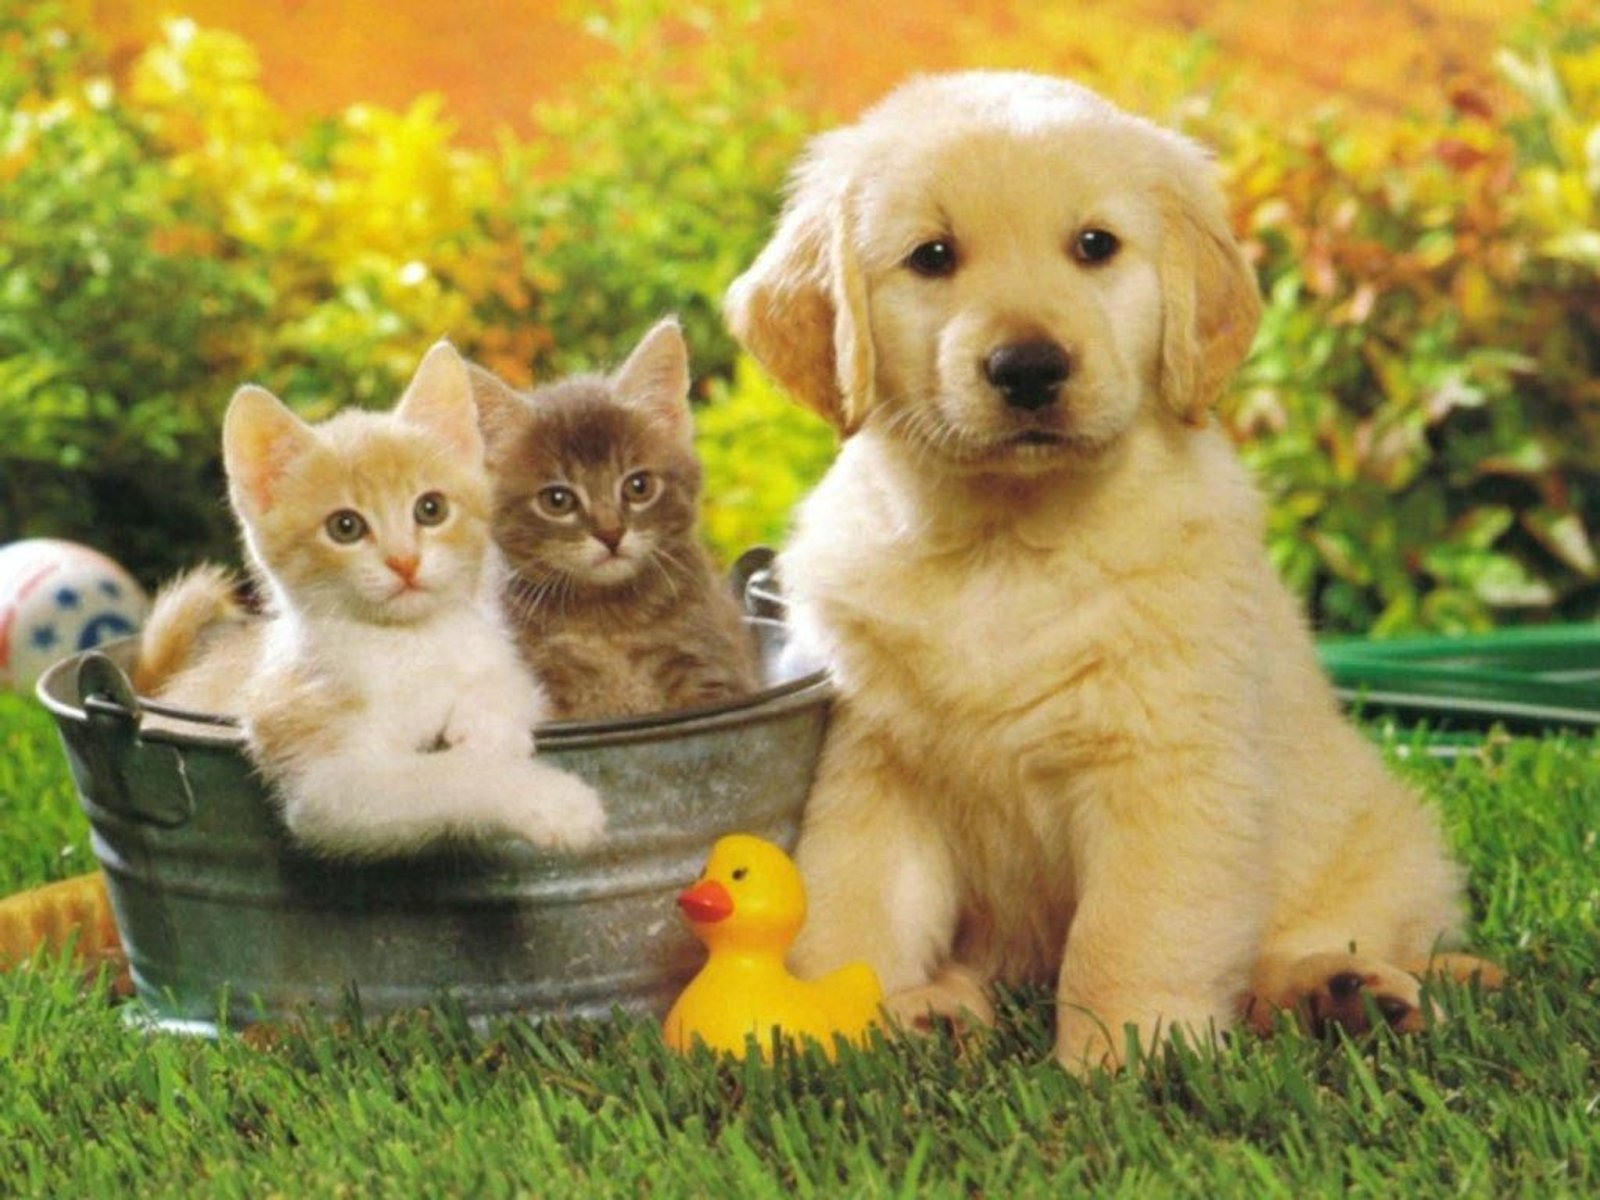 Golden Retriever puppy and kittens wallpaper